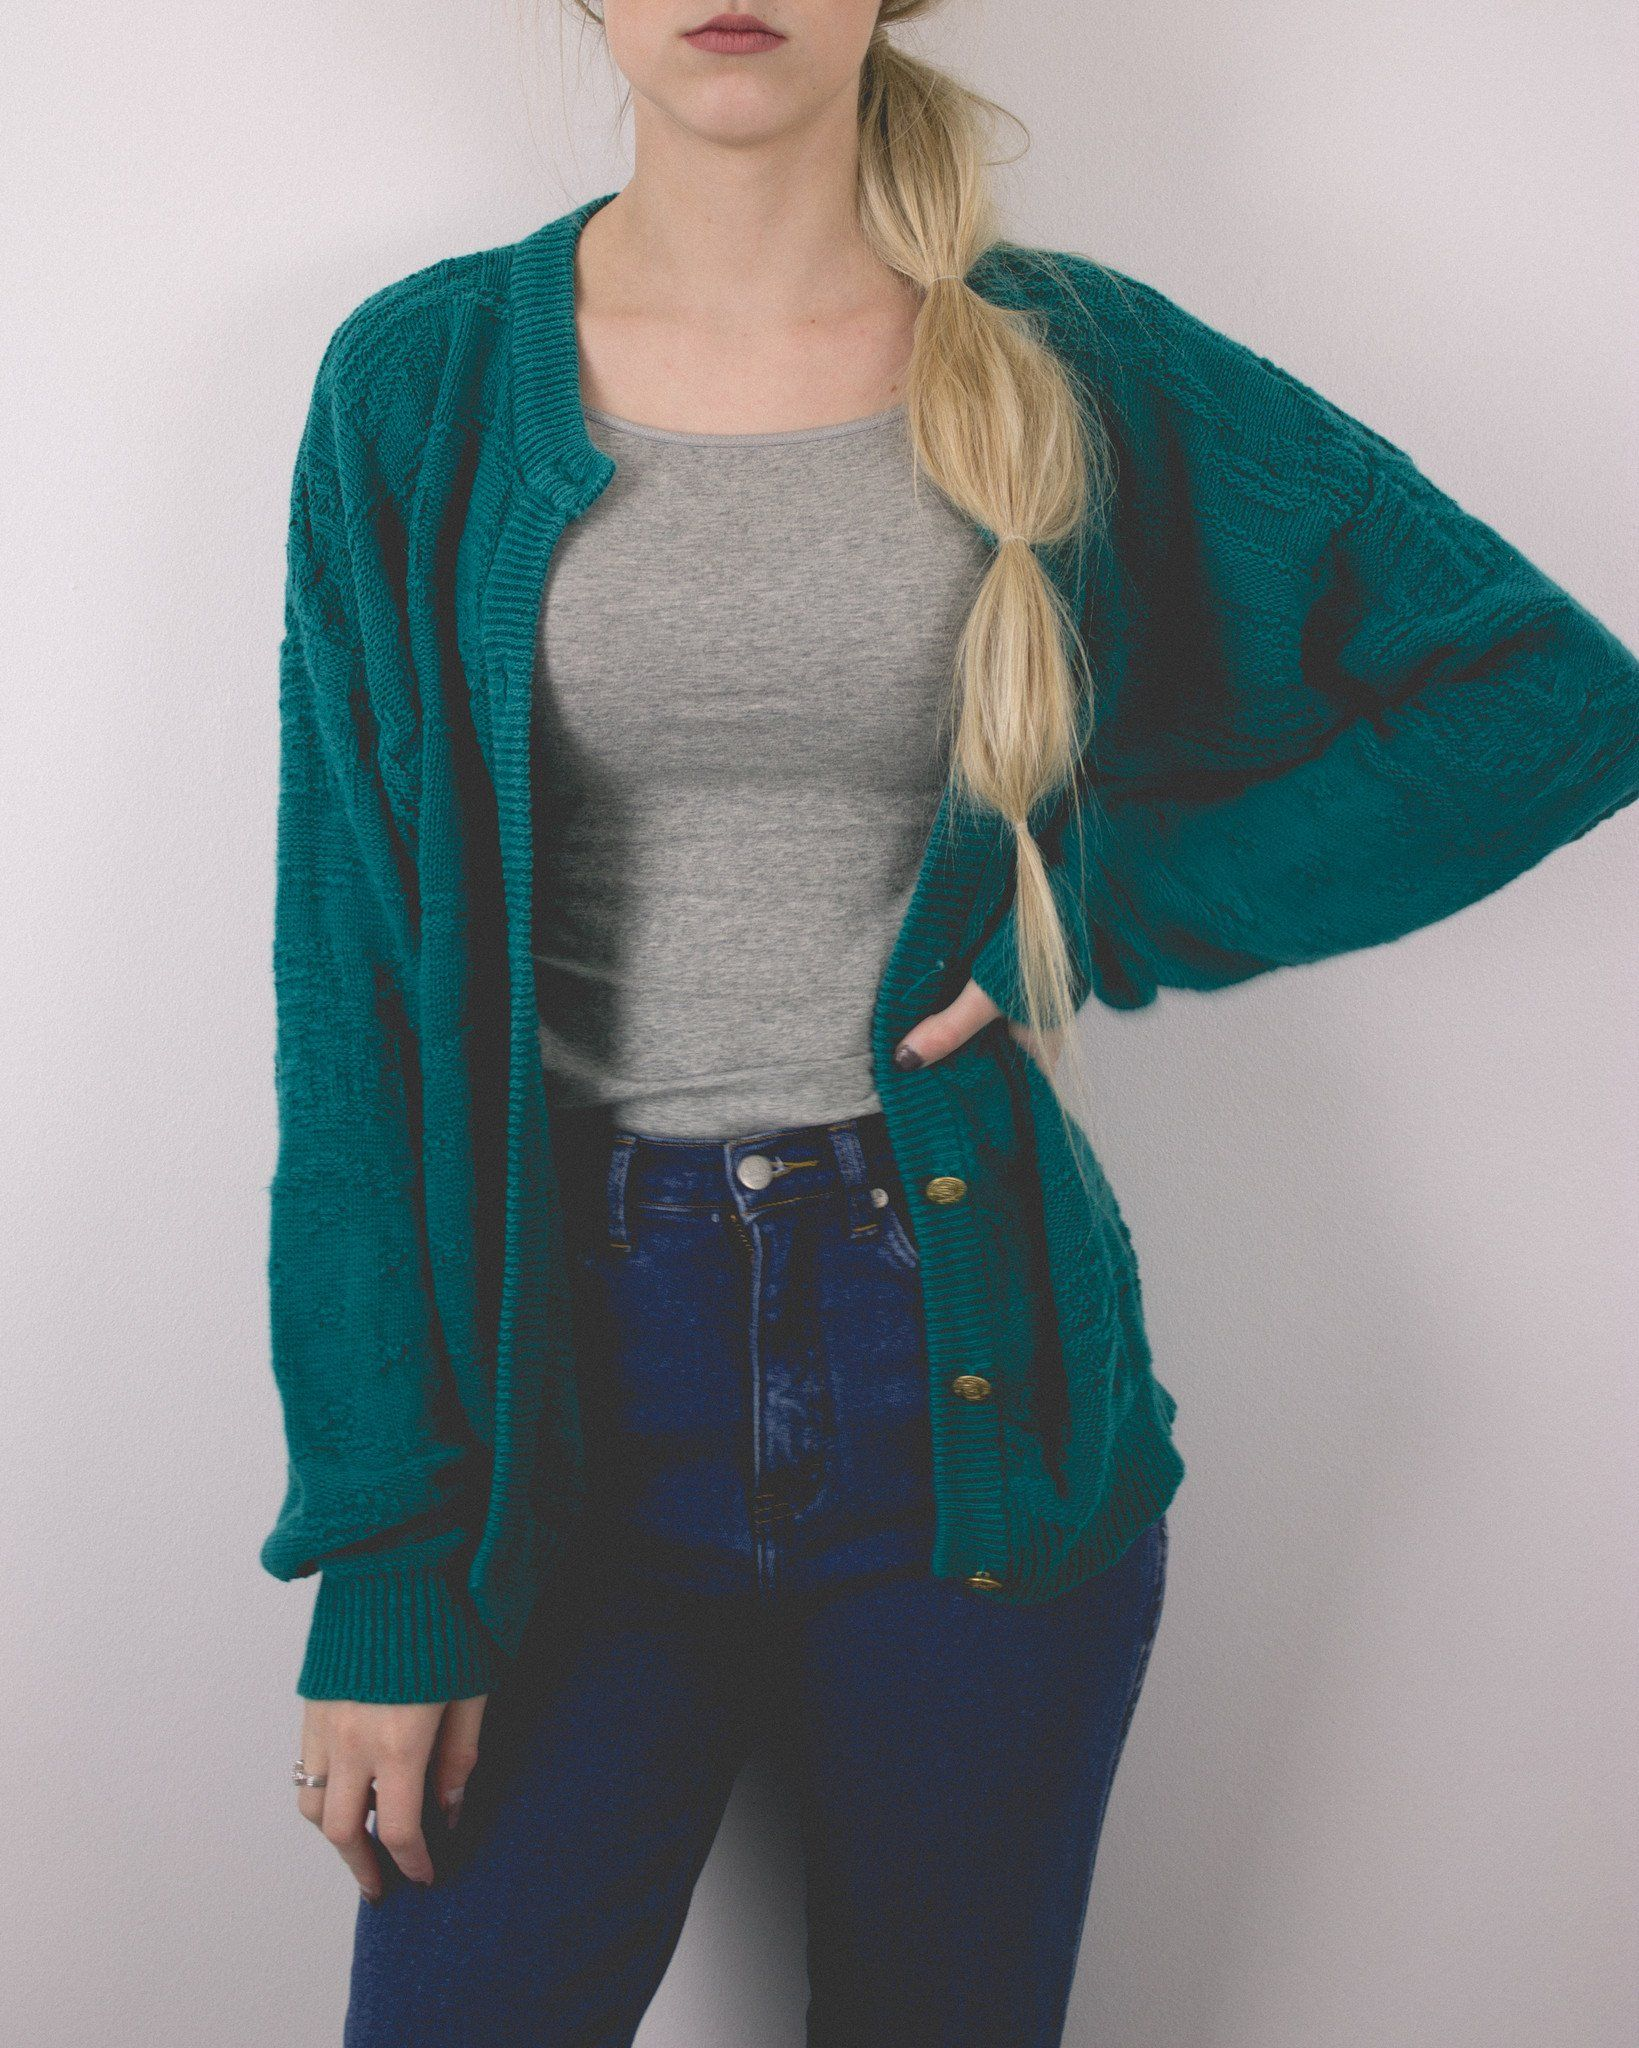 Vintage Teal Knit Cardigan Sweater - Mint Threads - 3